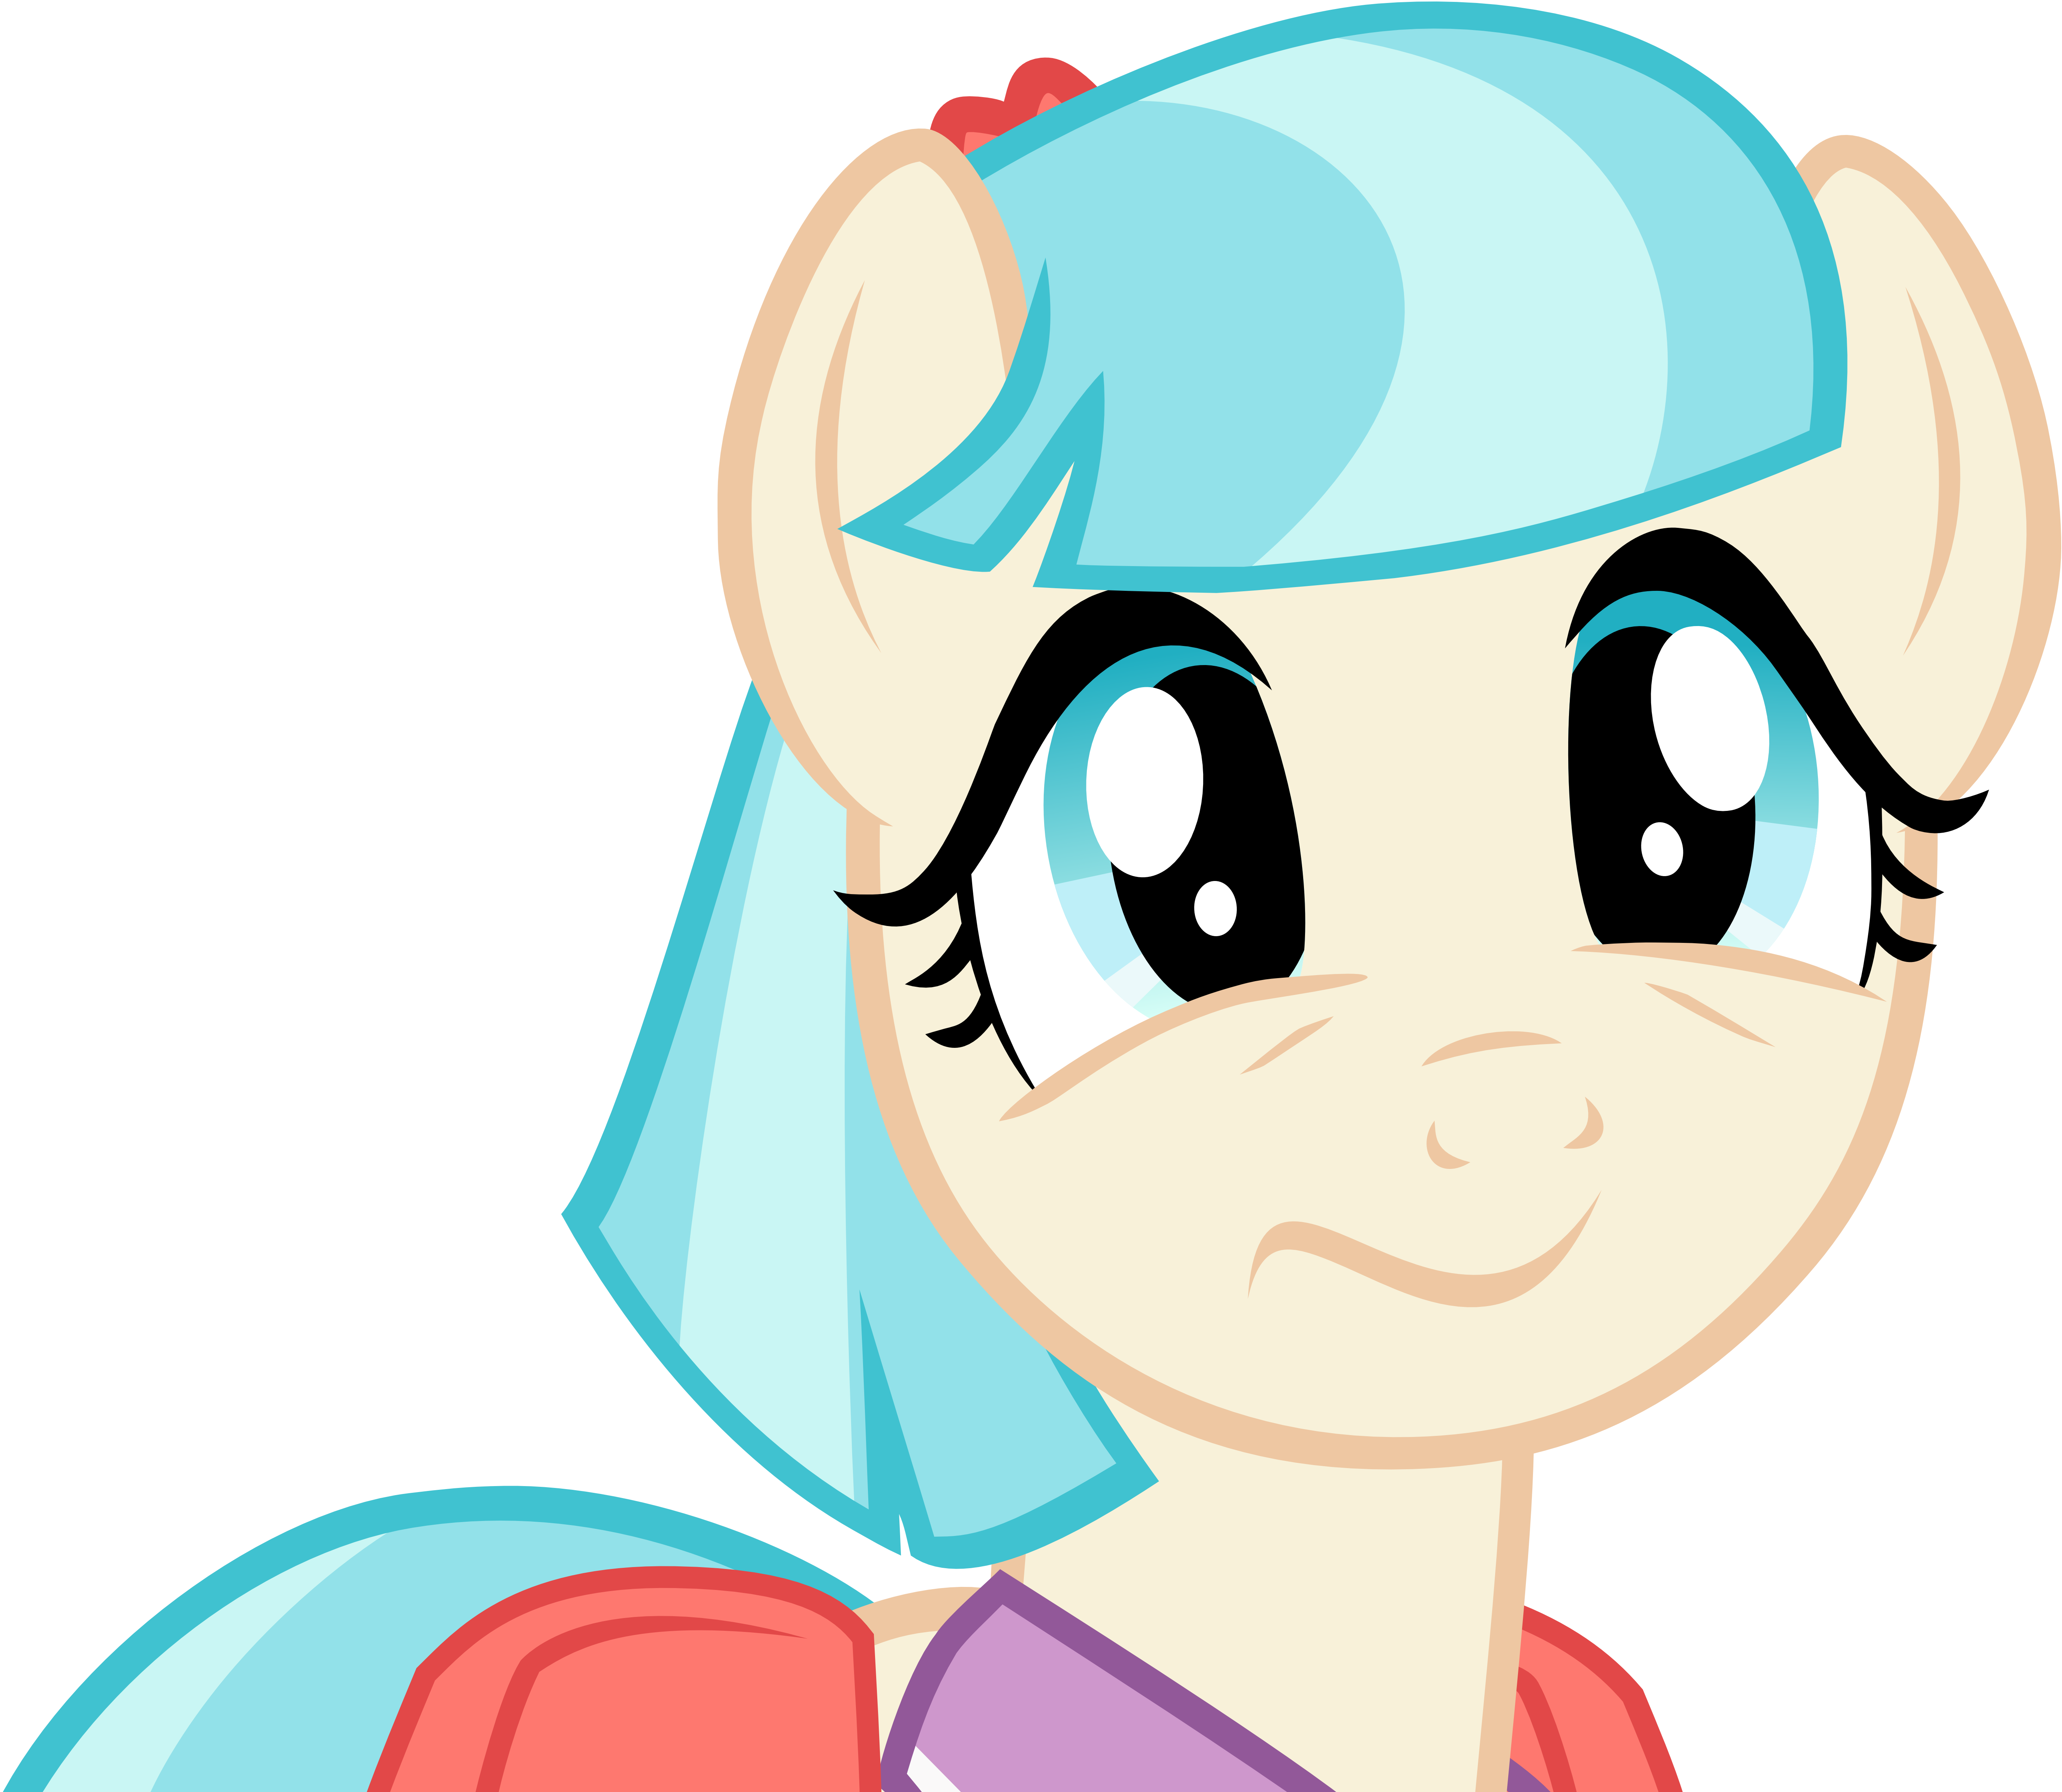 Coco Pommel's face of awkwardness